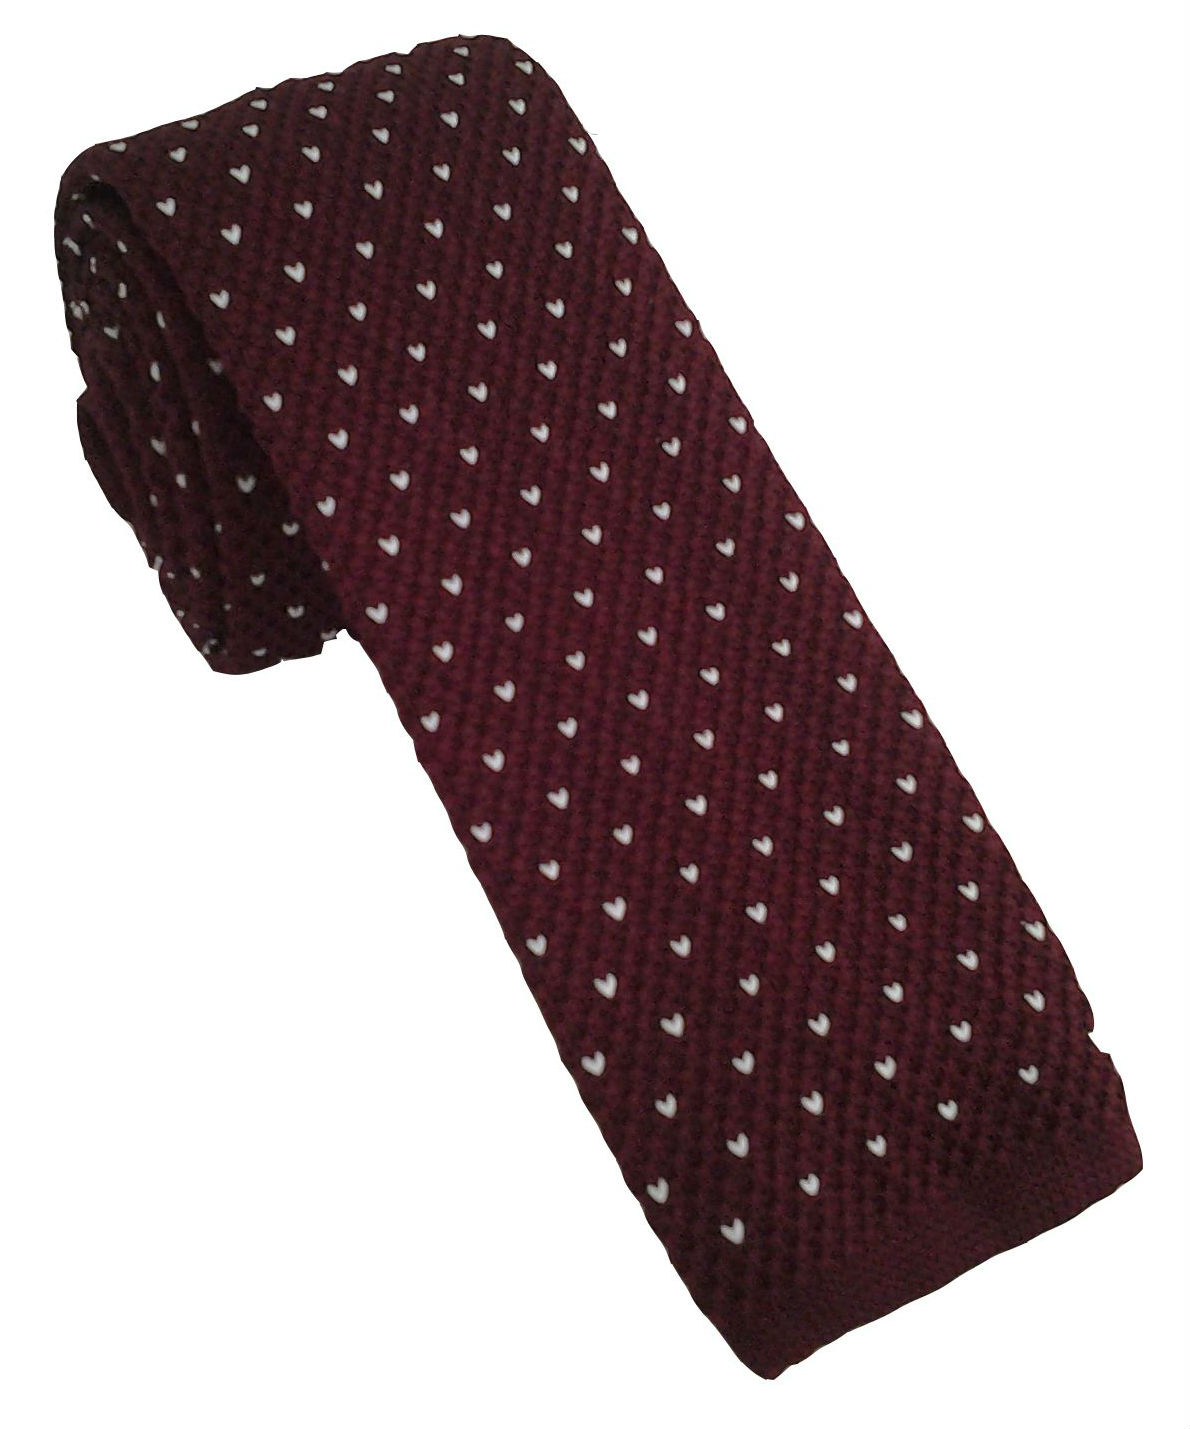 Burgundy Knitted Tie with White Polka Dot